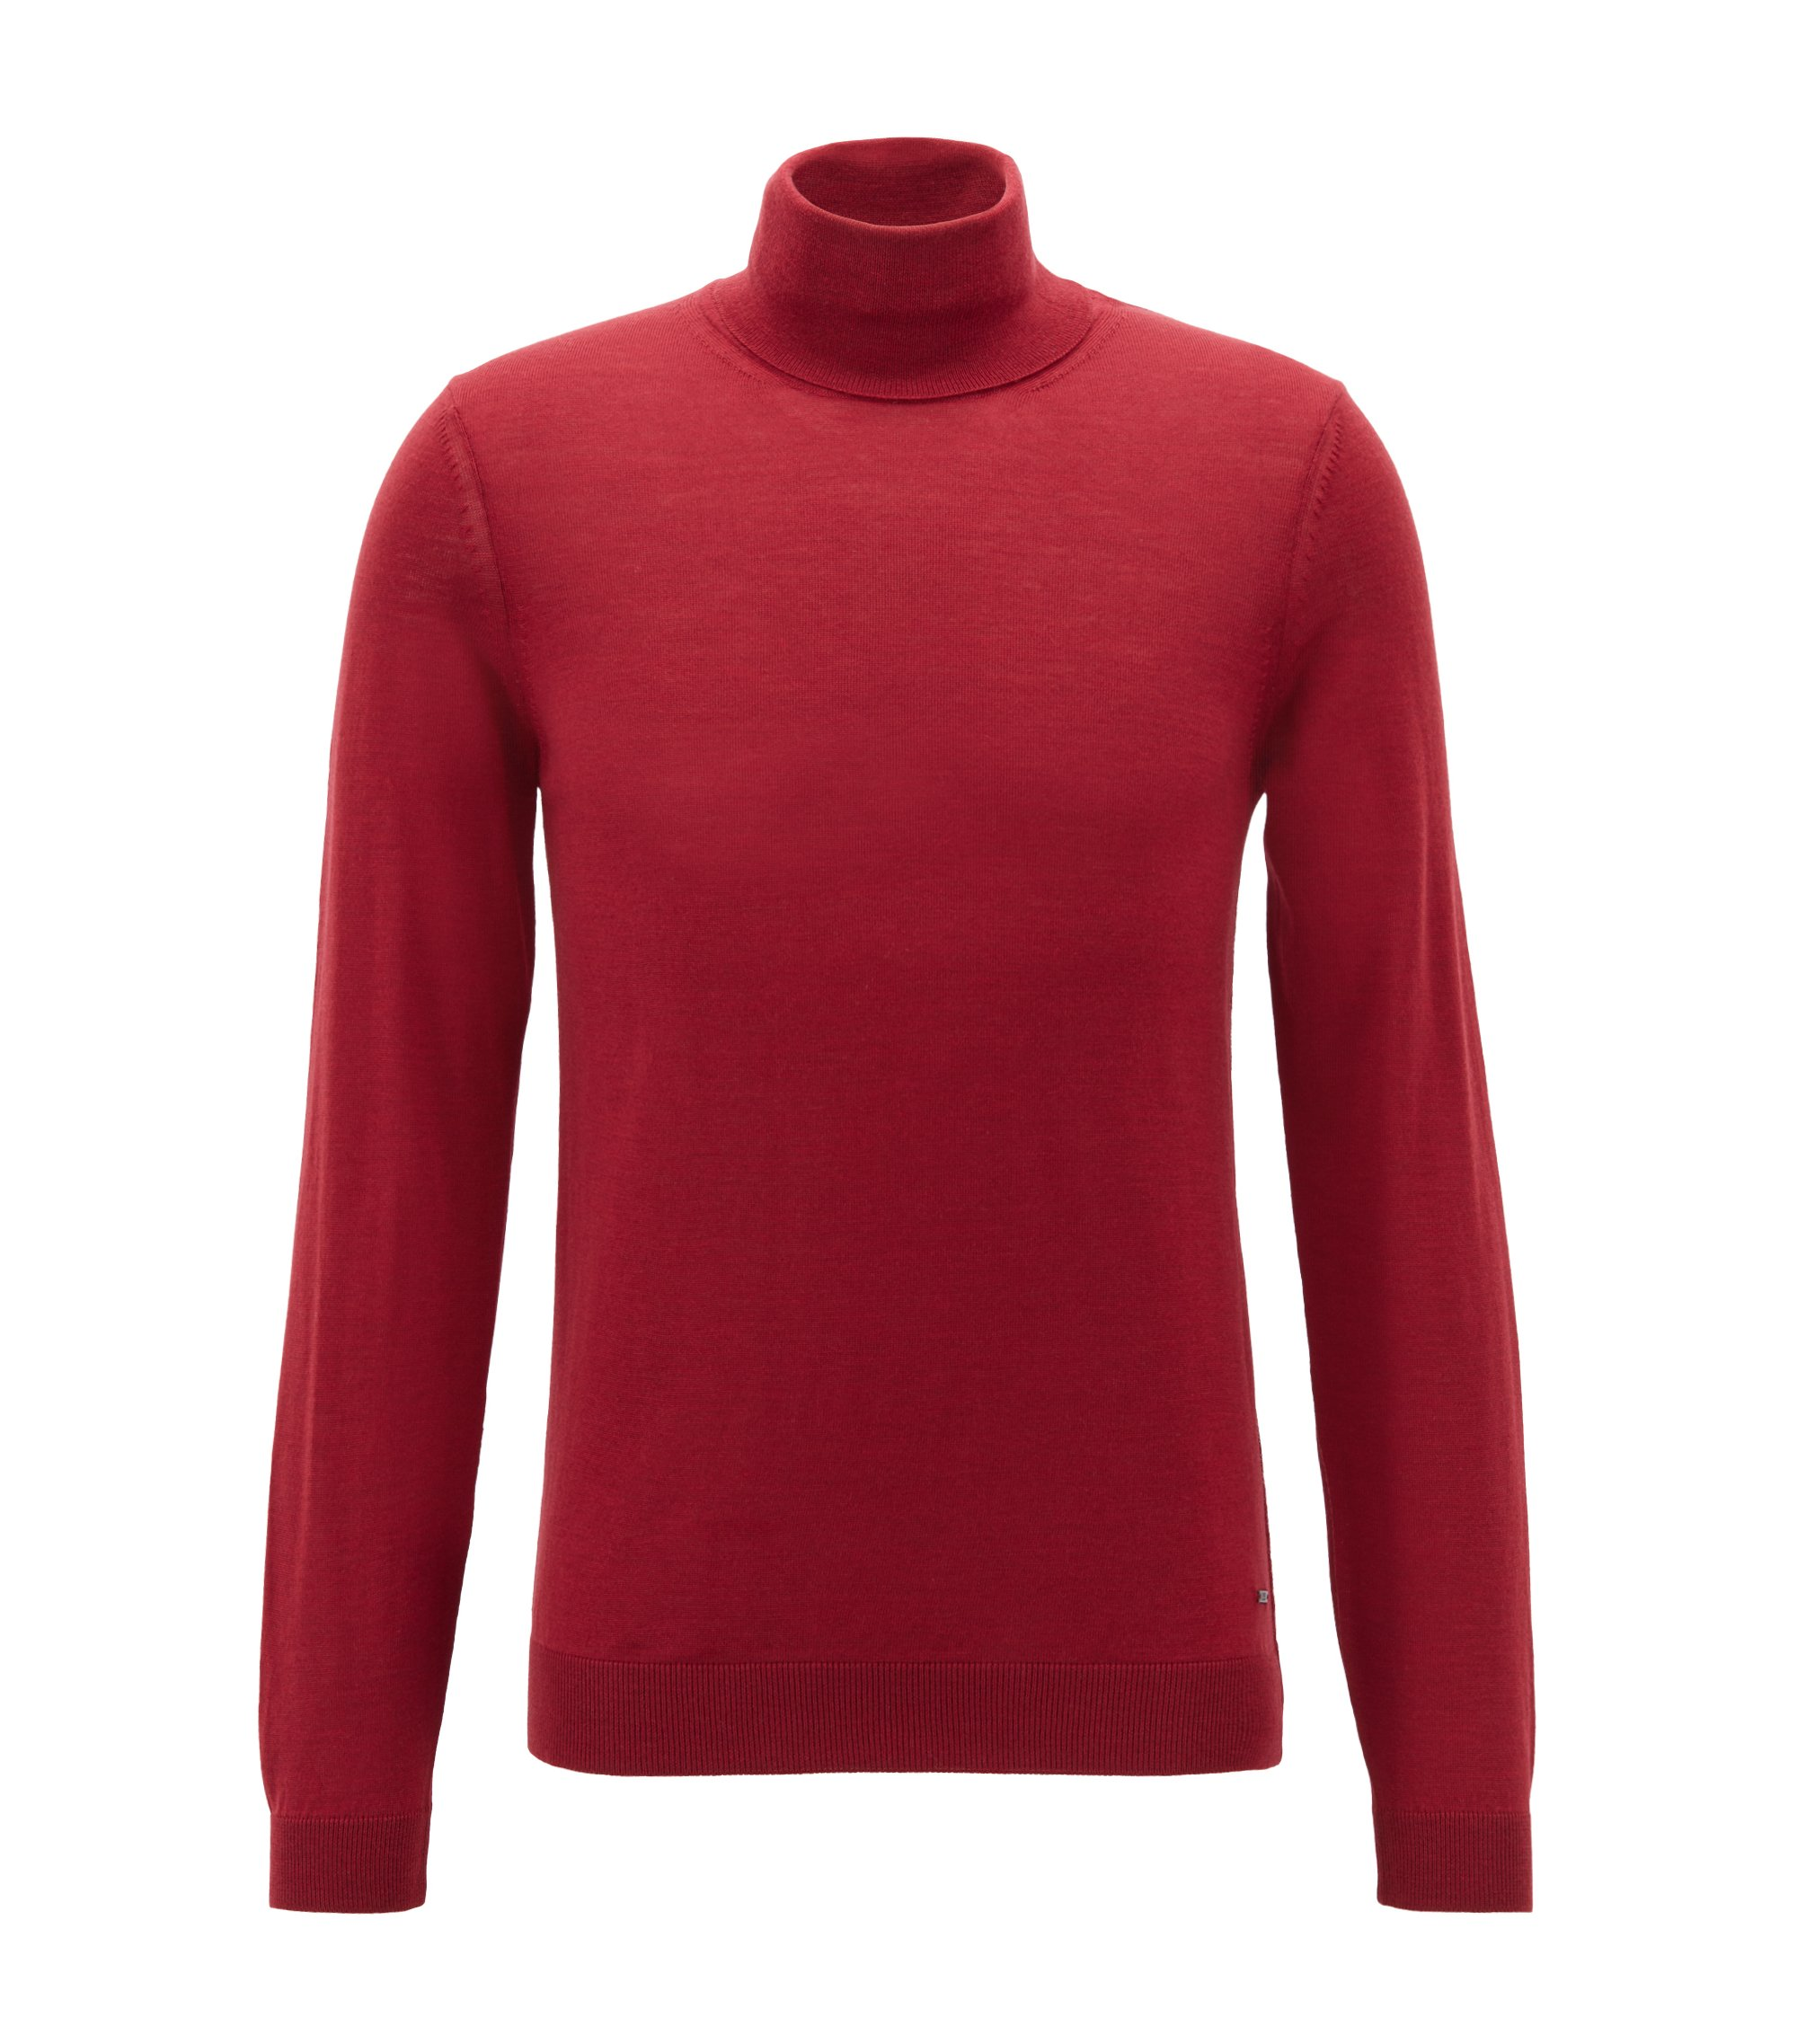 Turtleneck sweater in extra-fine Italian merino wool, Dark Red